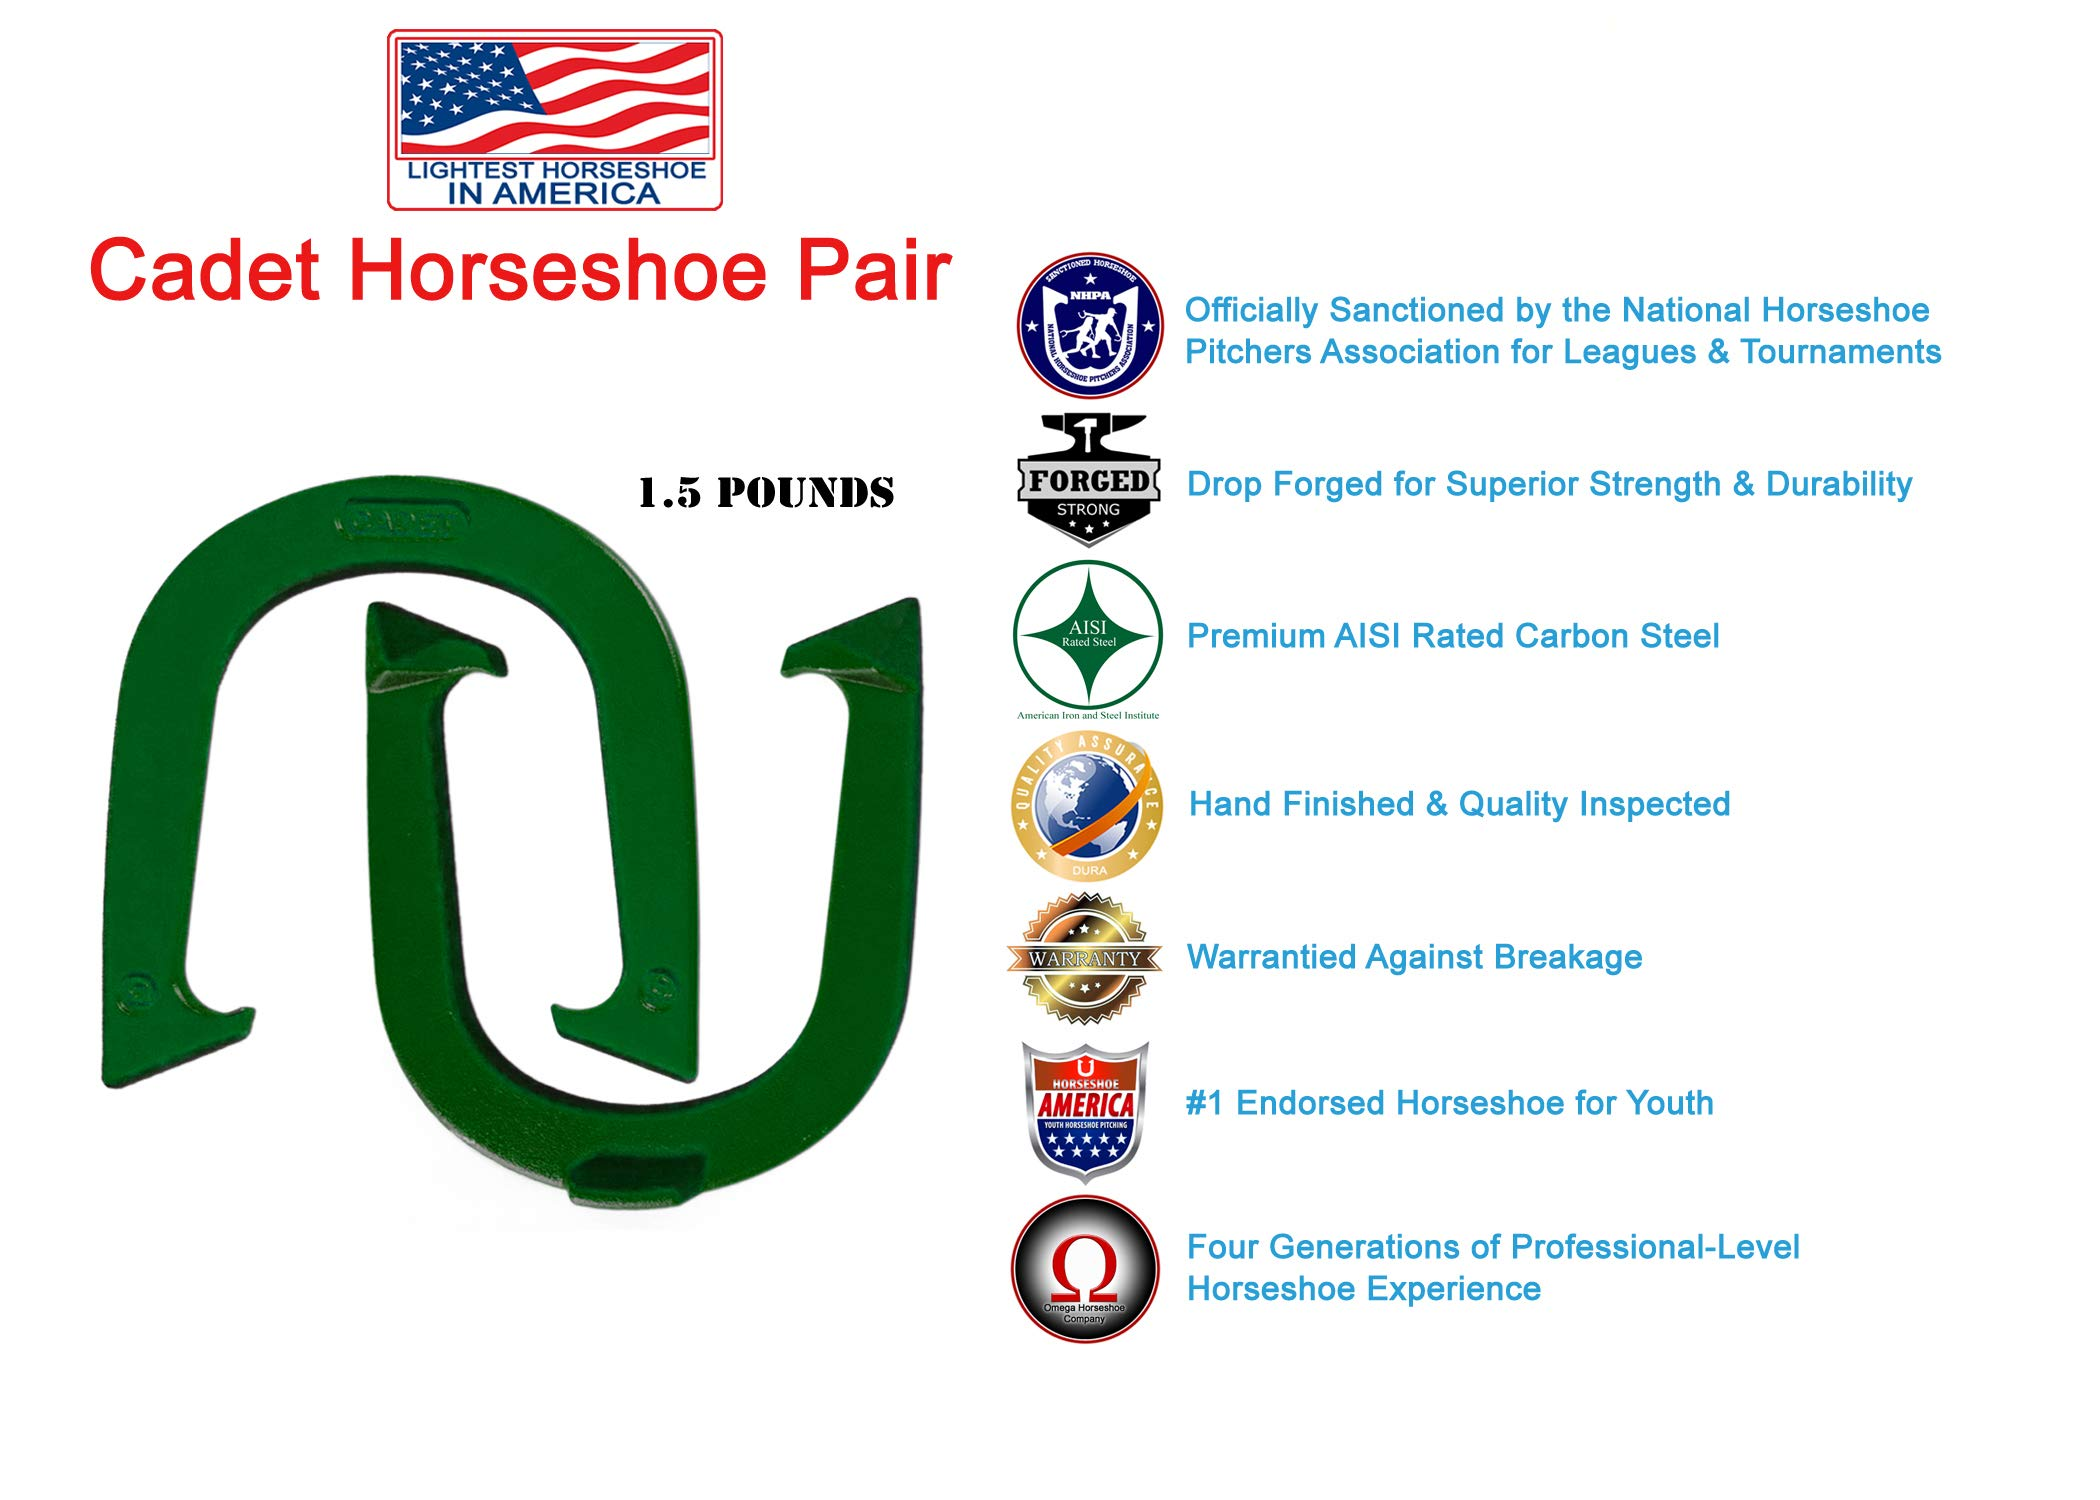 Light Weight Cadet Pitching Horseshoes - Green Finish - NHPA Sanctioned for Tournament Play - Drop Forged Steel - One Pair (2 Shoes) by Cadet Horseshoes